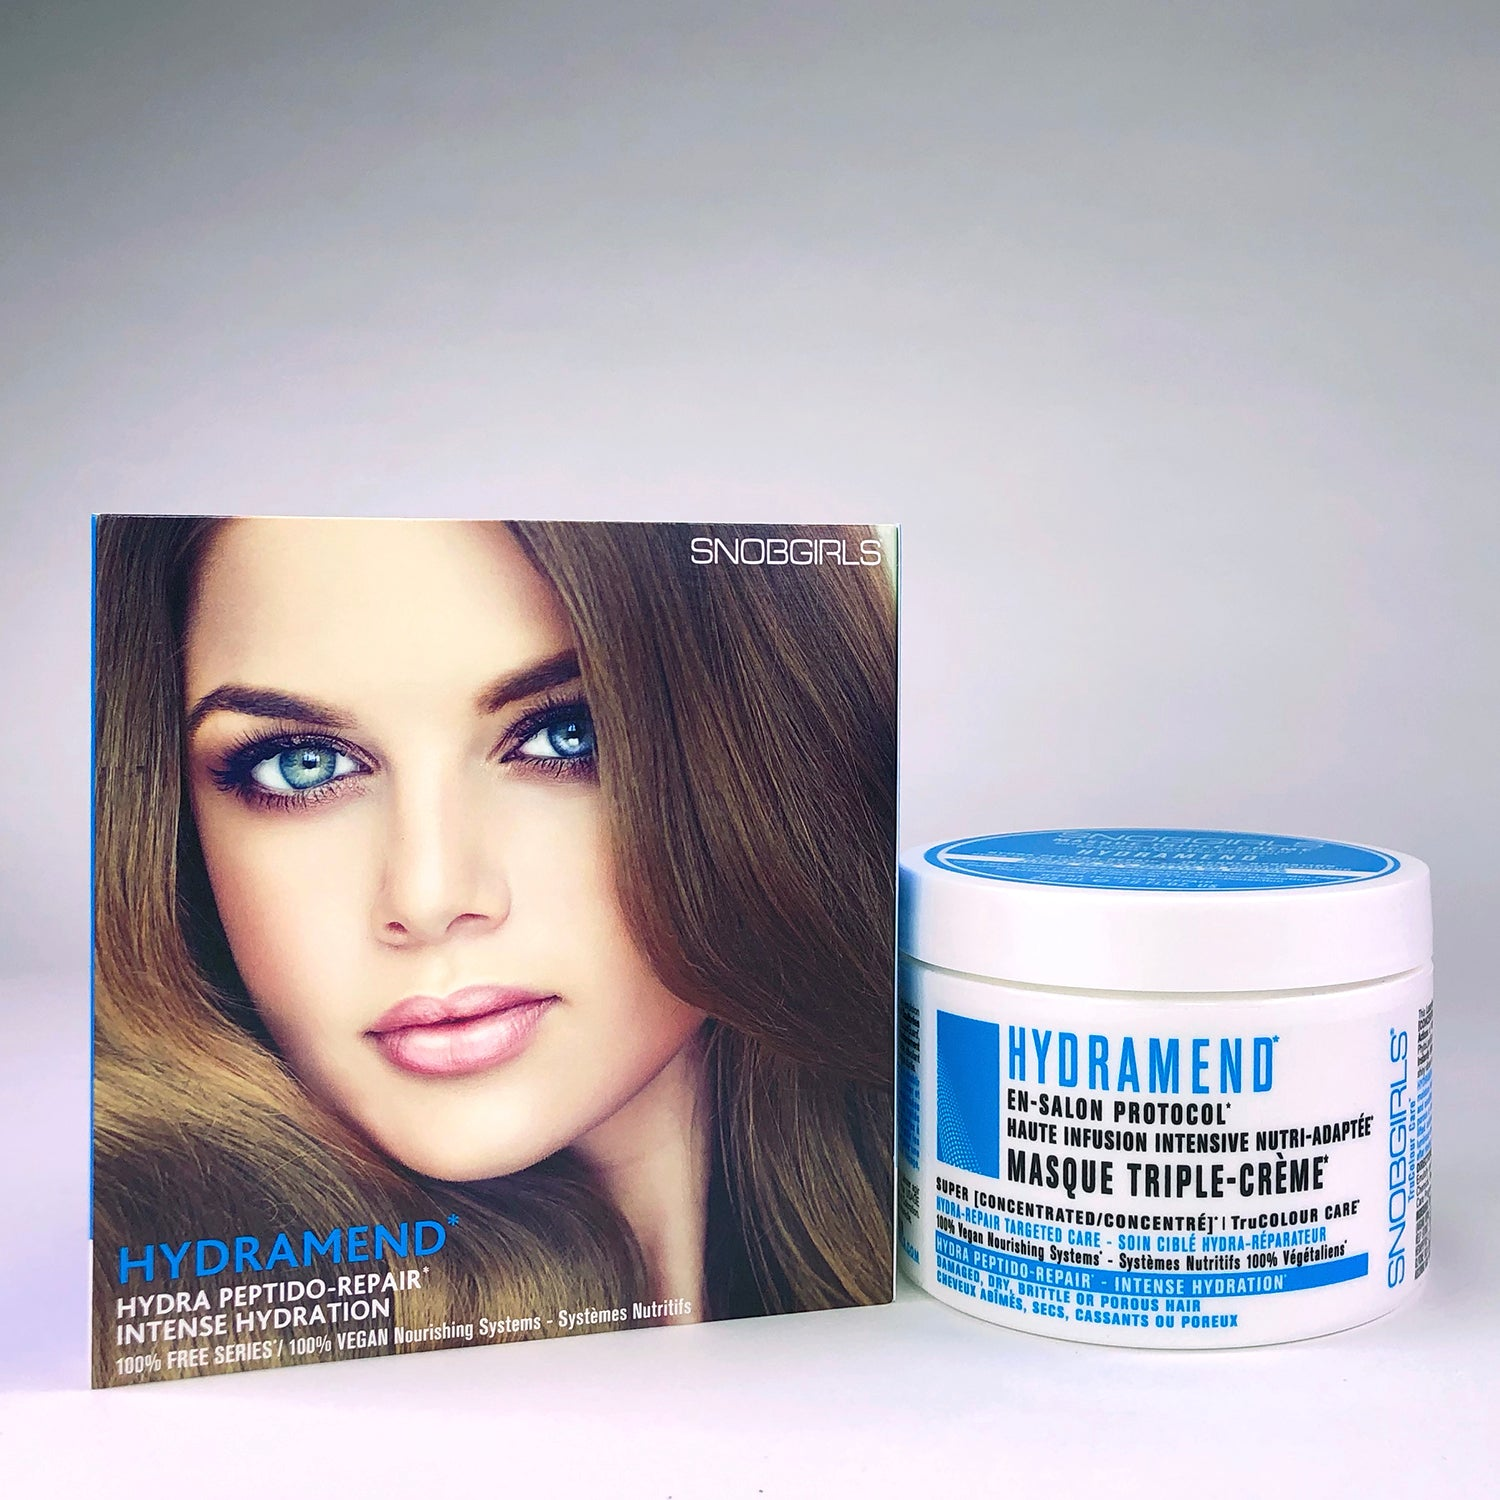 HYDRAMEND Intense Repair & Hydration Triple-Creme Masque